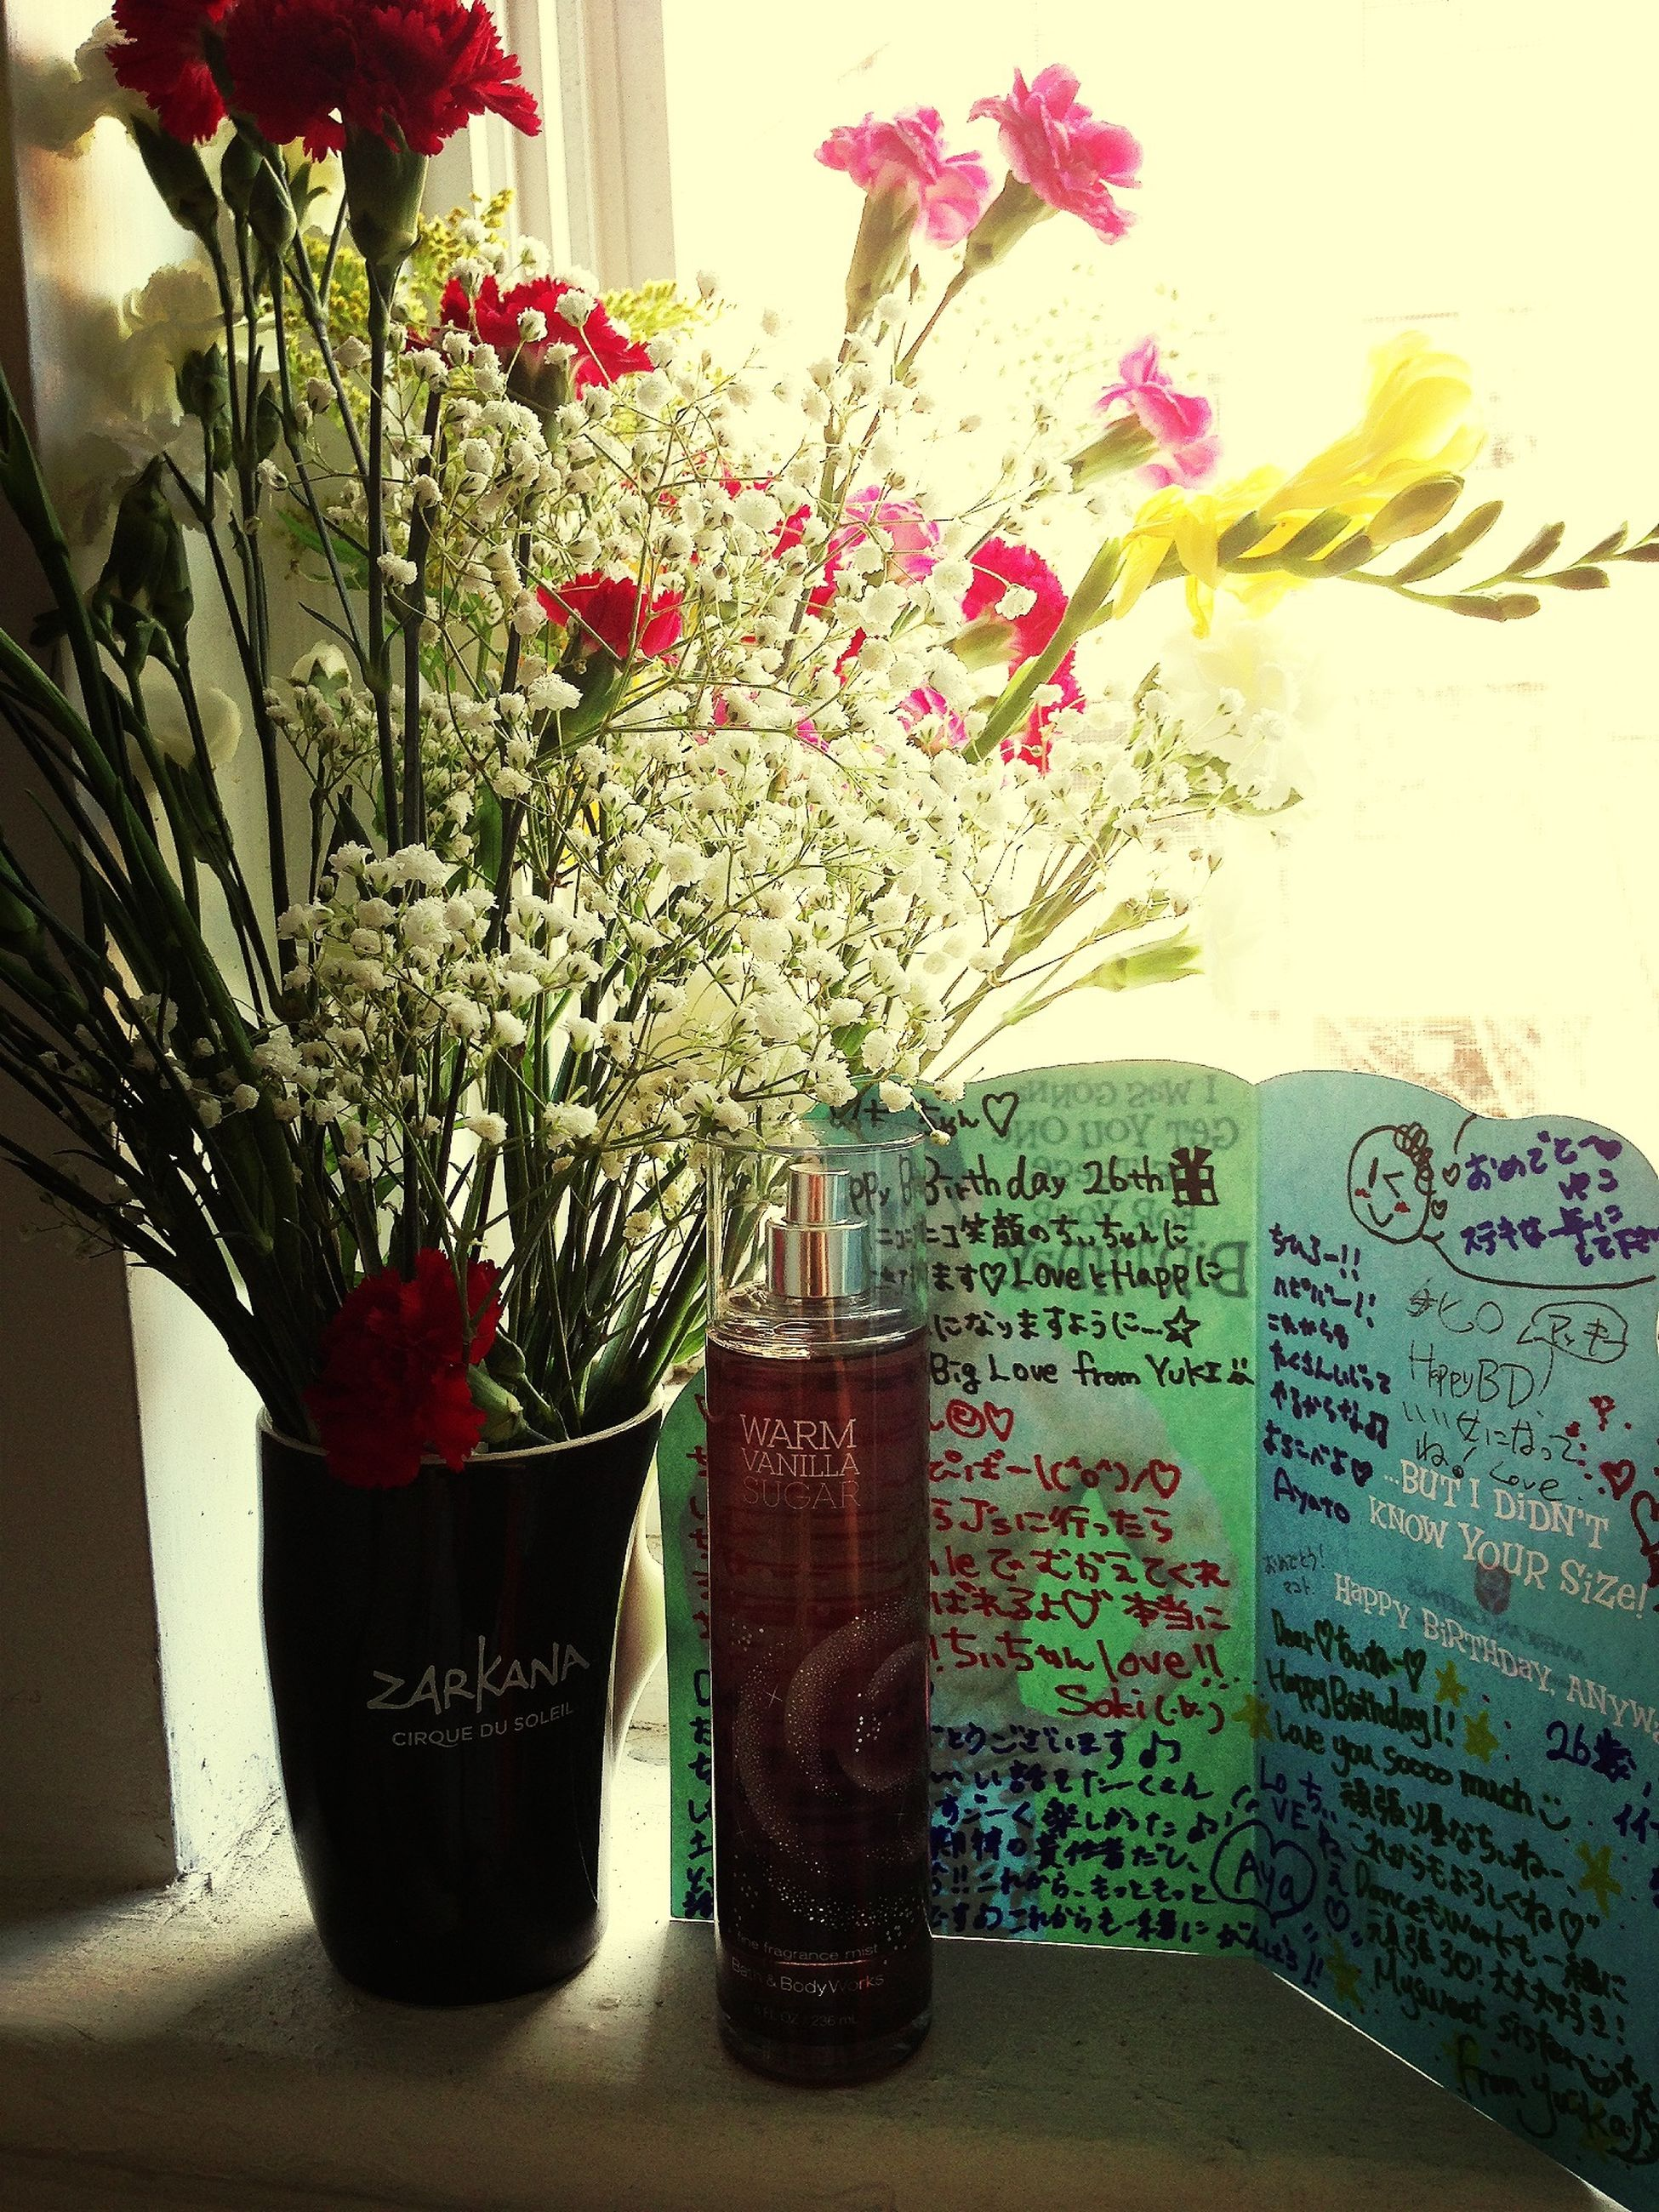 flower, vase, table, indoors, potted plant, freshness, glass - material, flower pot, fragility, growth, plant, decoration, pink color, window, still life, home interior, close-up, window sill, transparent, leaf